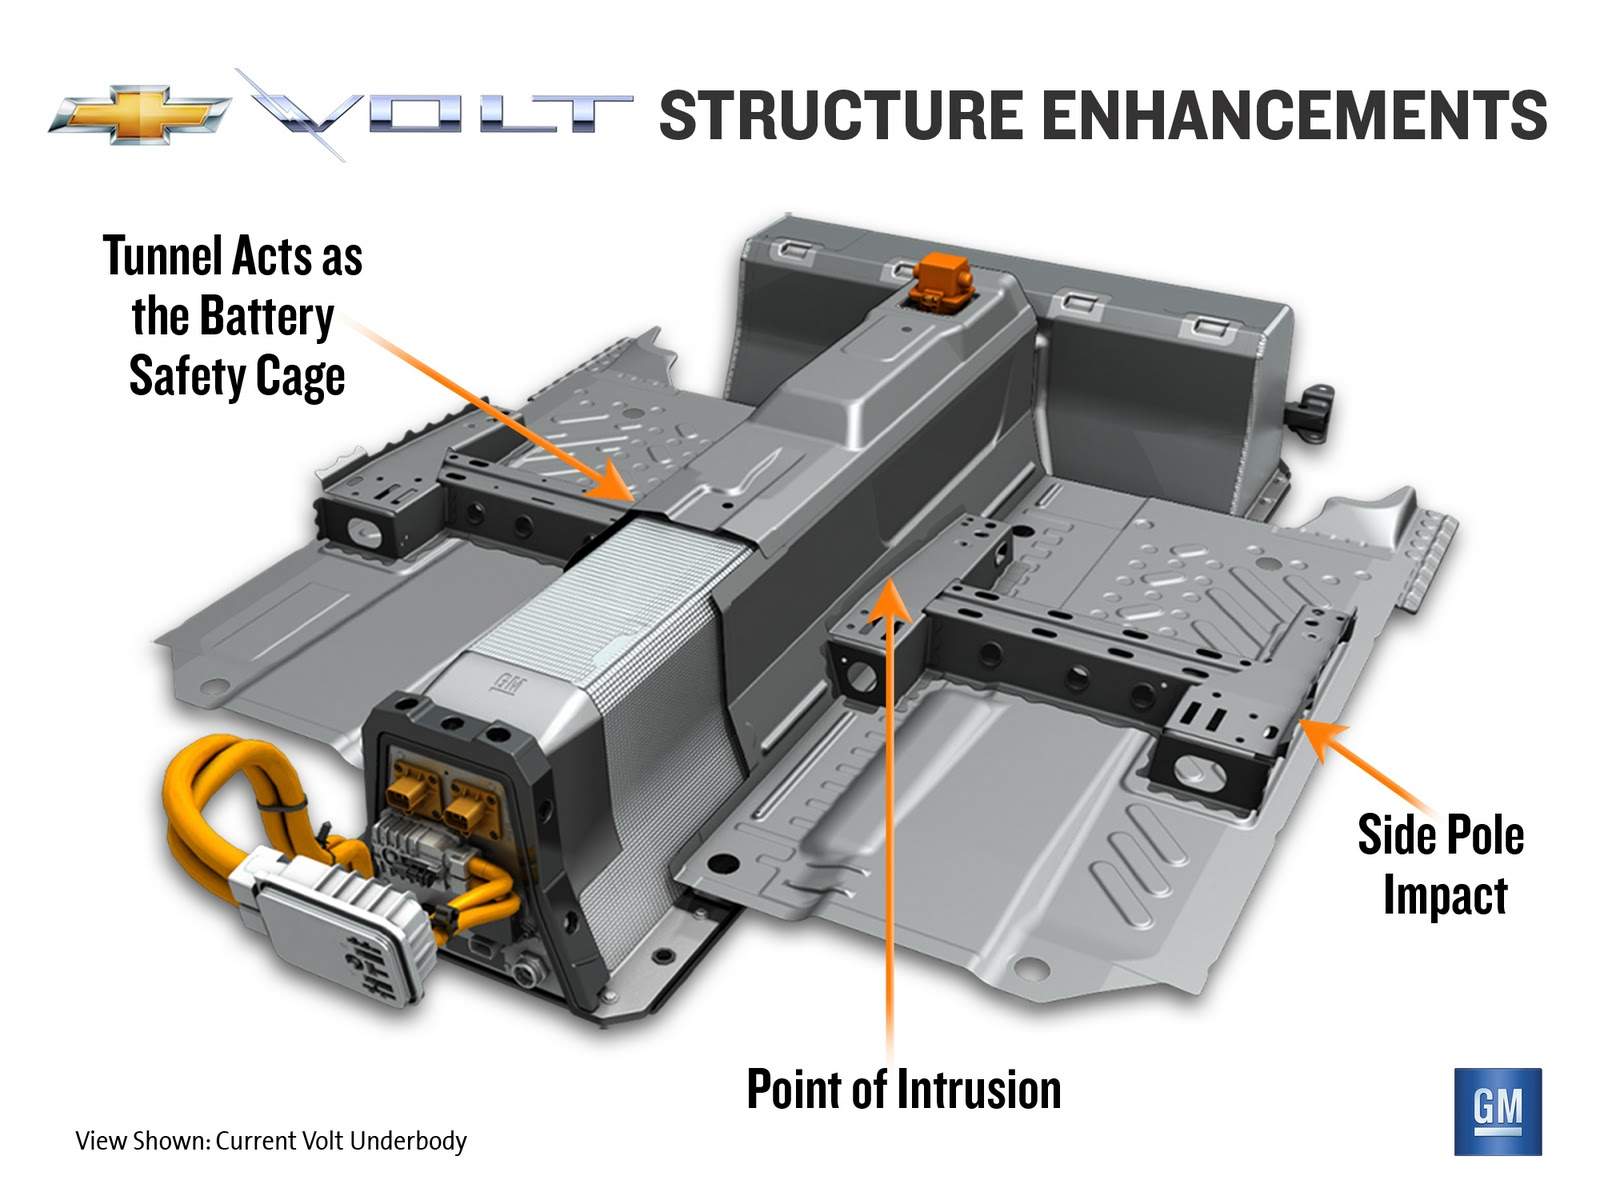 Gm Announce Structural And Battery Enhancements For Chevy Volt